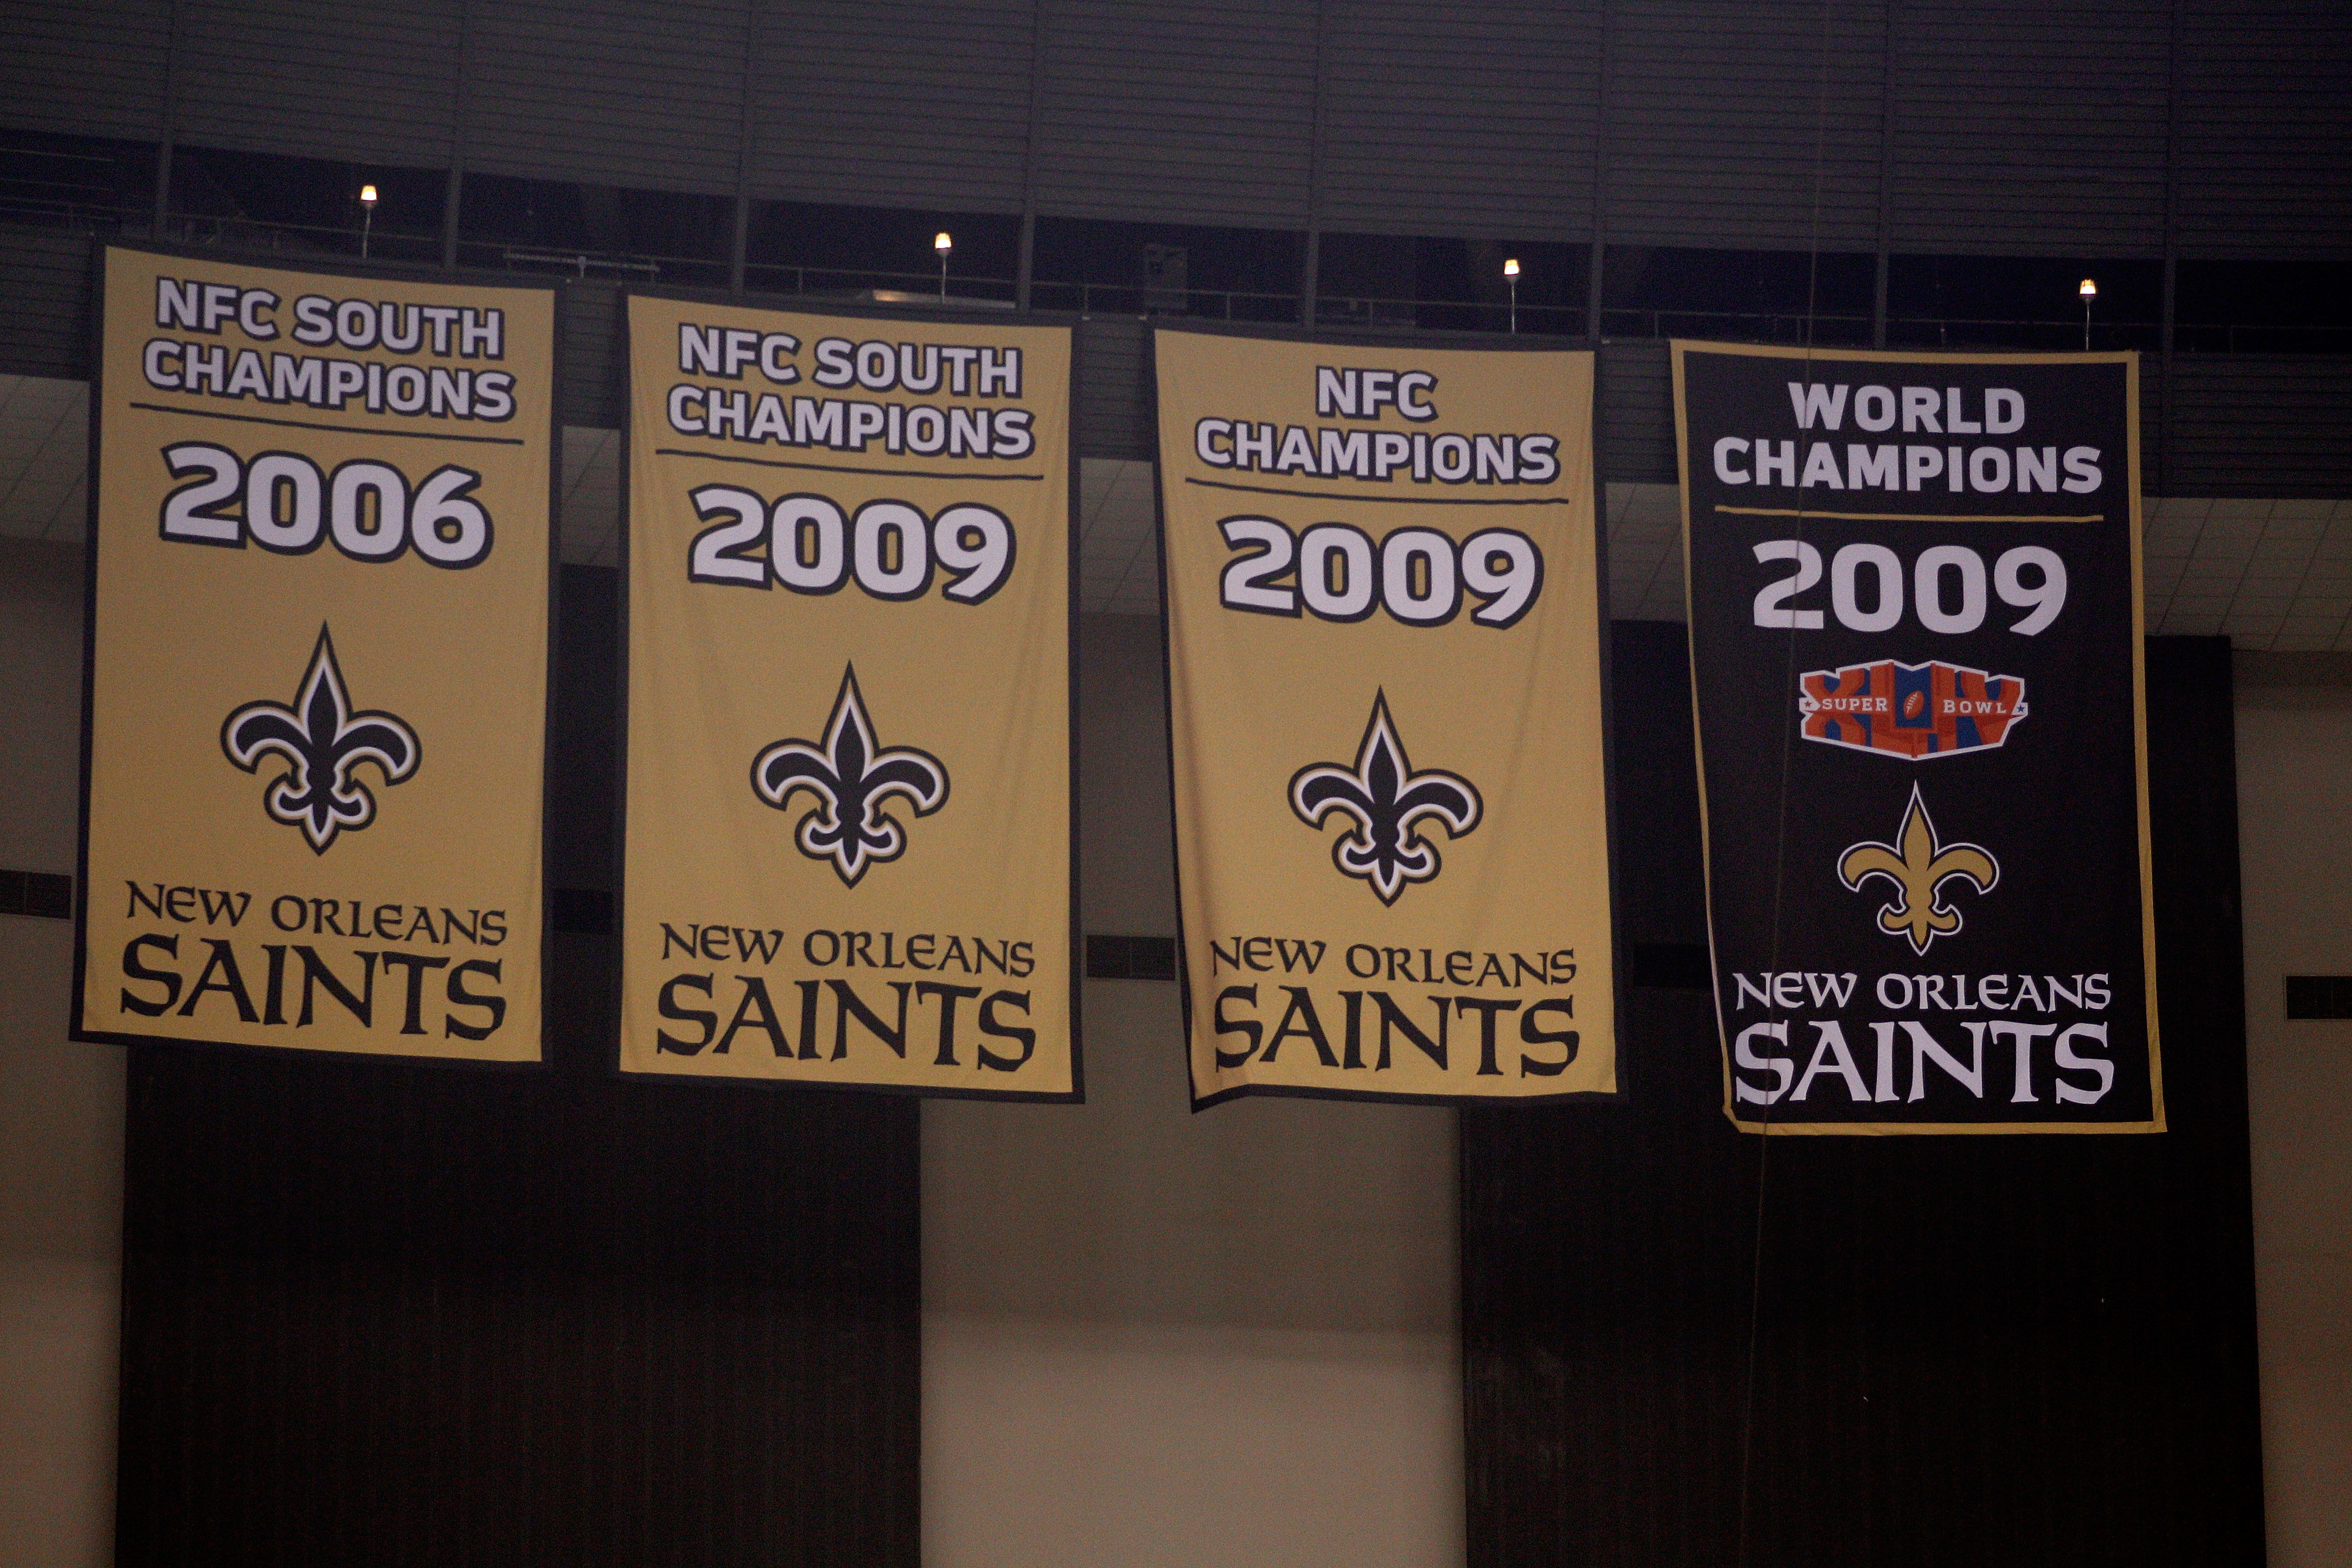 New Orleans is still basking in the afterglow of last year's memorable run.